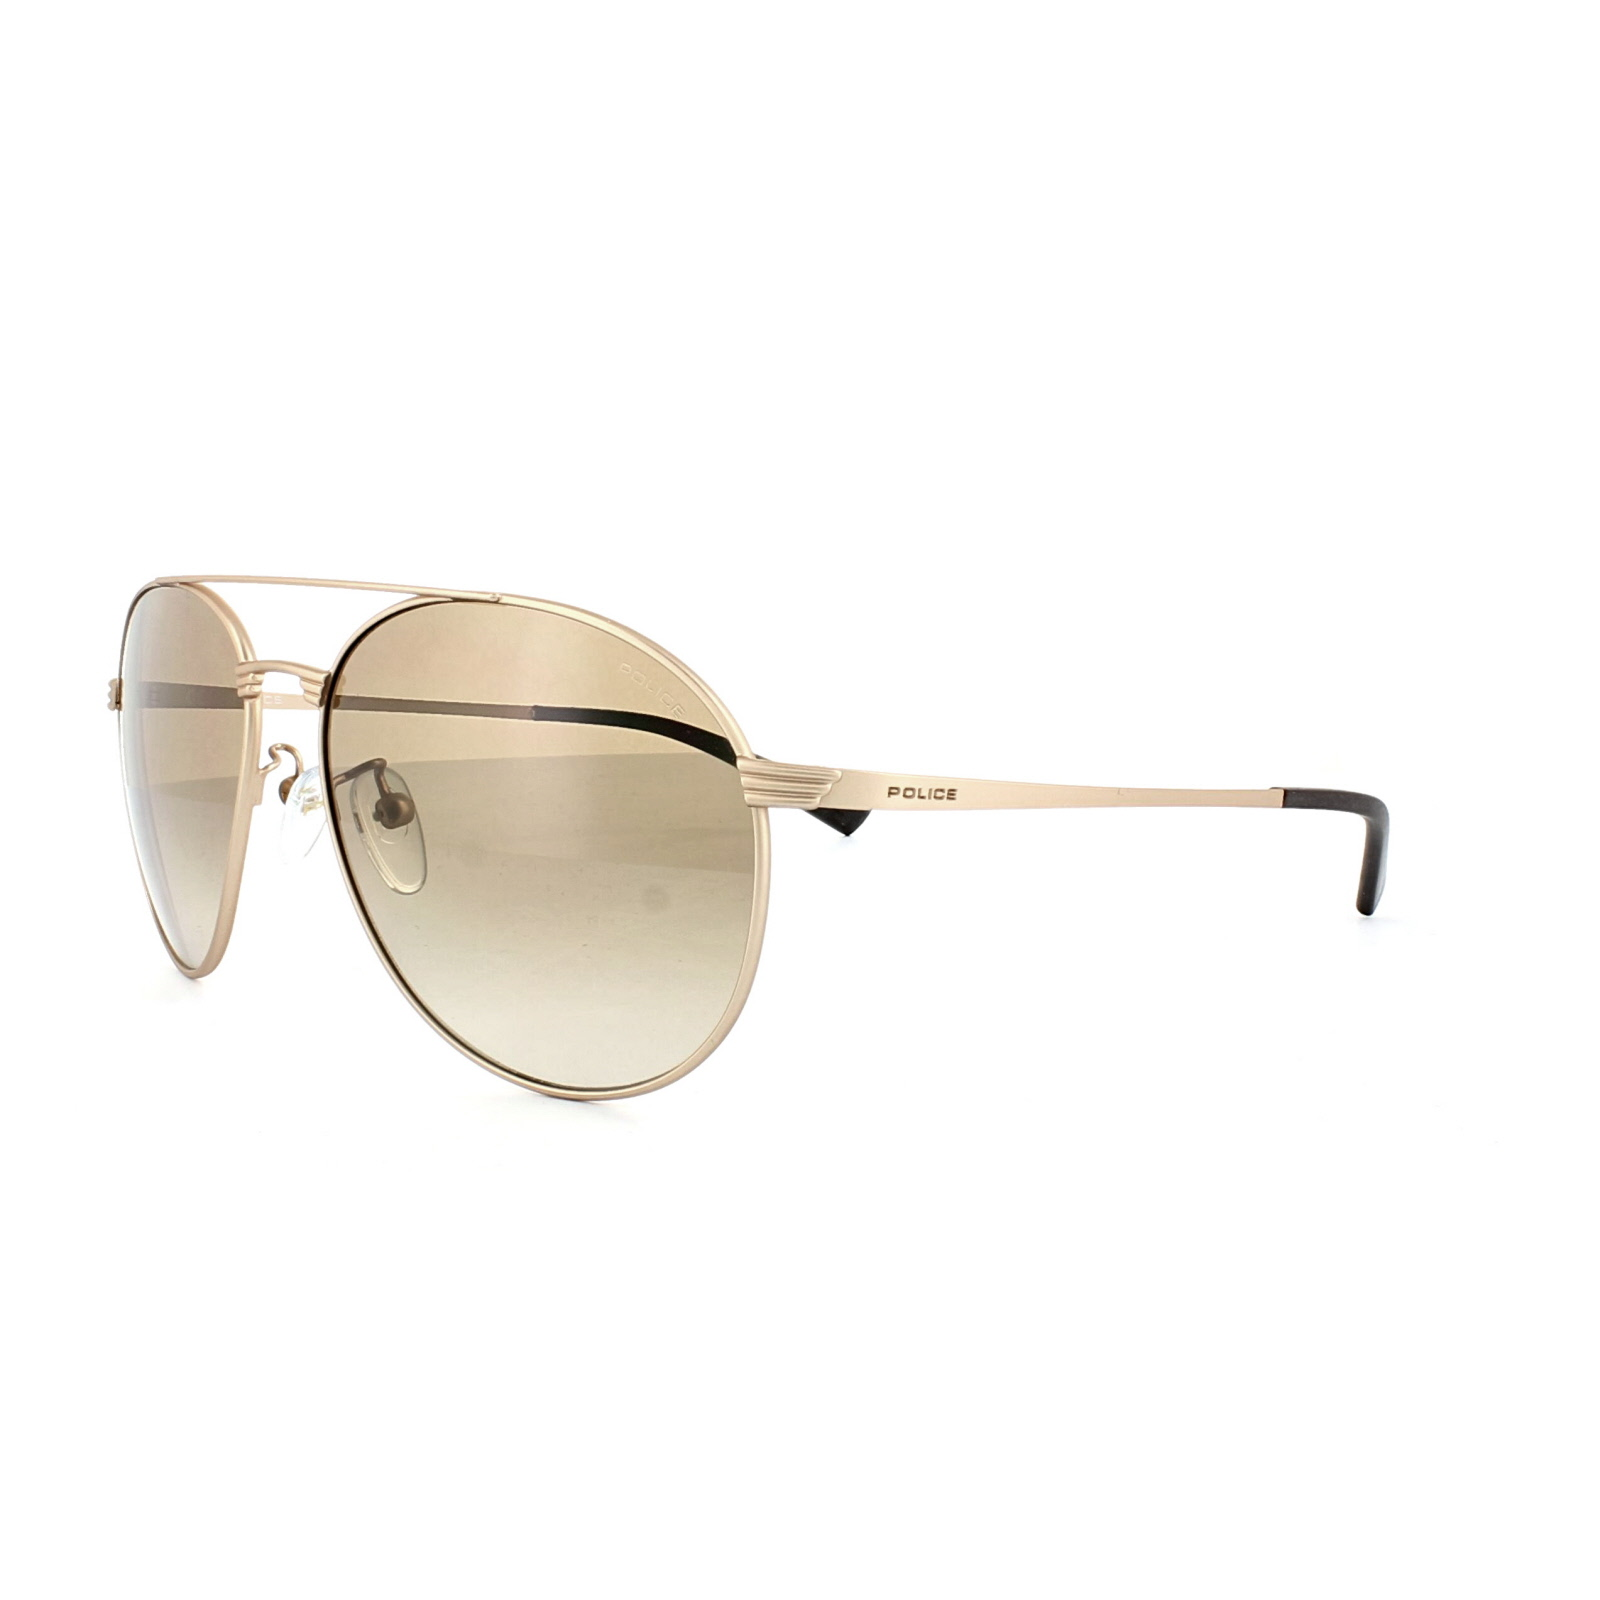 Gold Frame Police Sunglasses : Police Sunglasses S8953 Rival 2 648X Polished Rose Gold ...